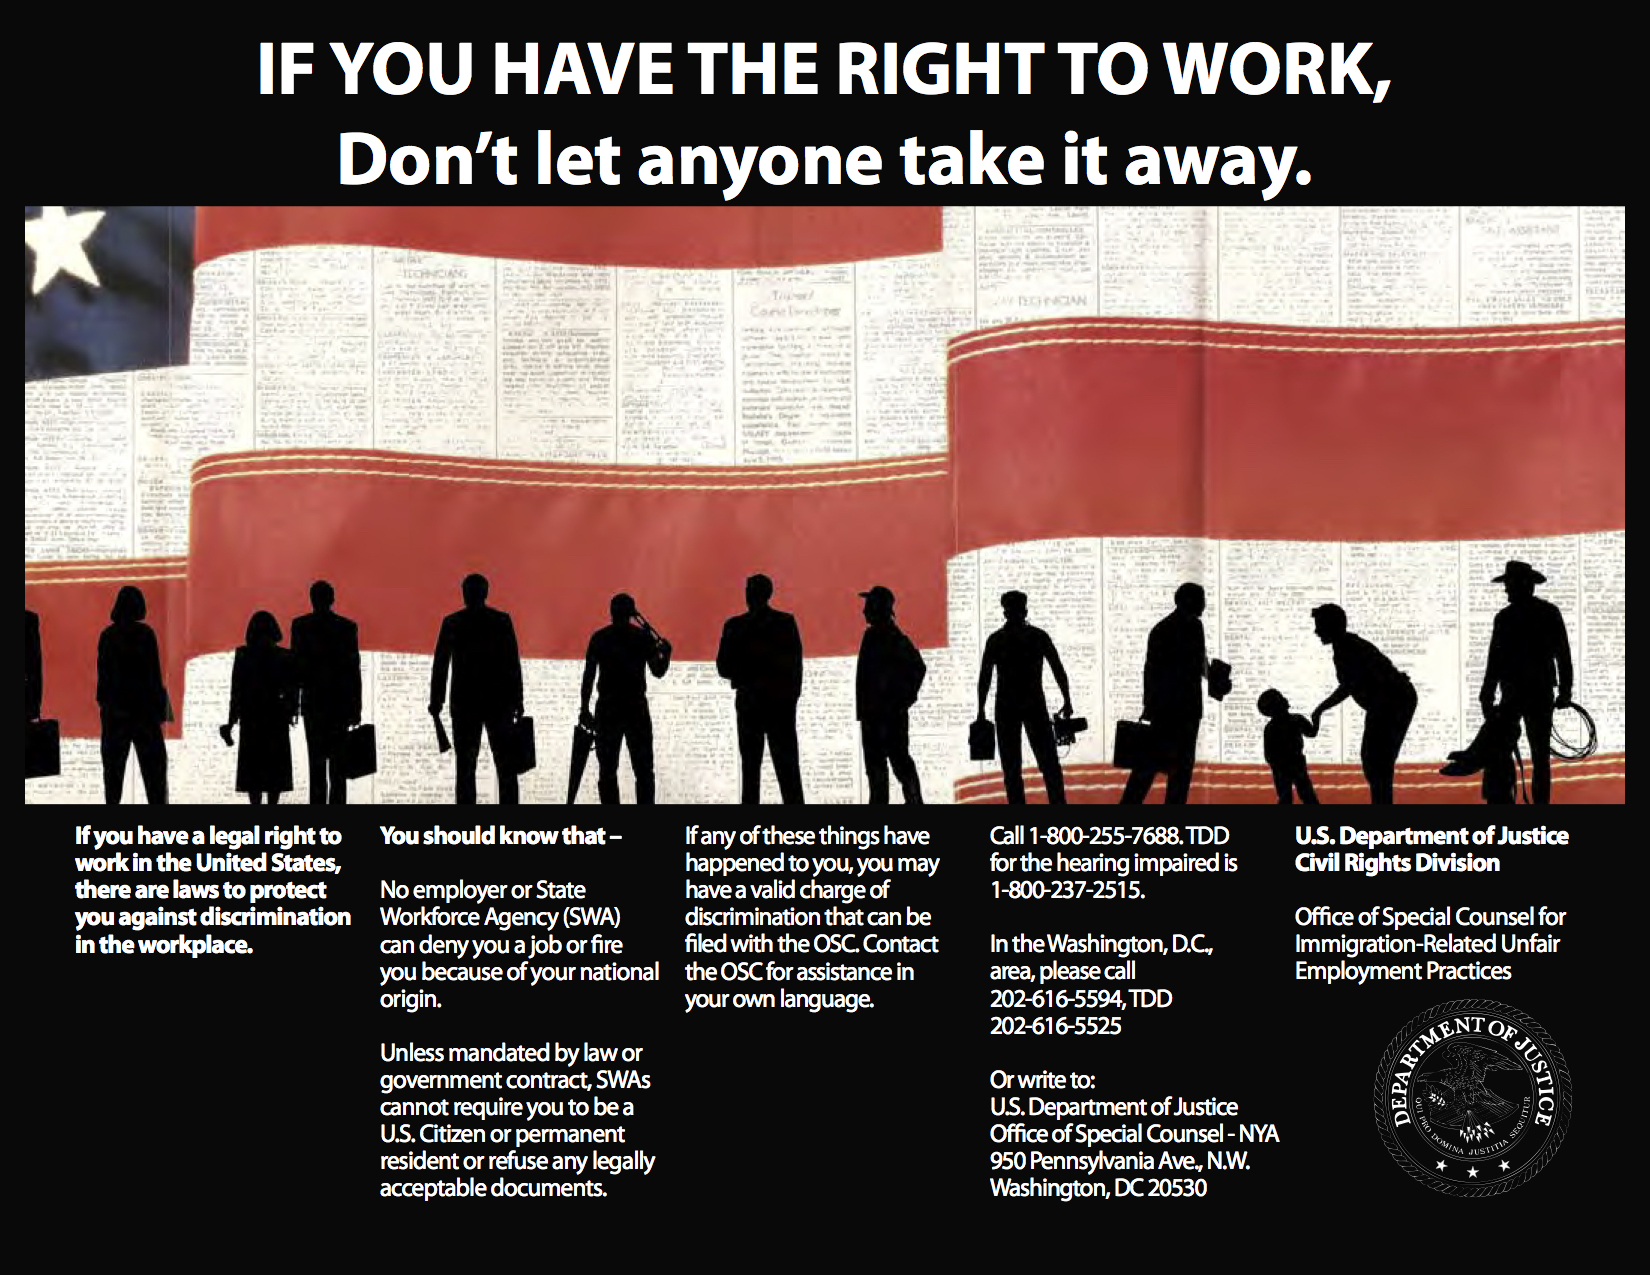 If you have a legal right to work in the US, there are laws to protect you again discrimination in the workplace.